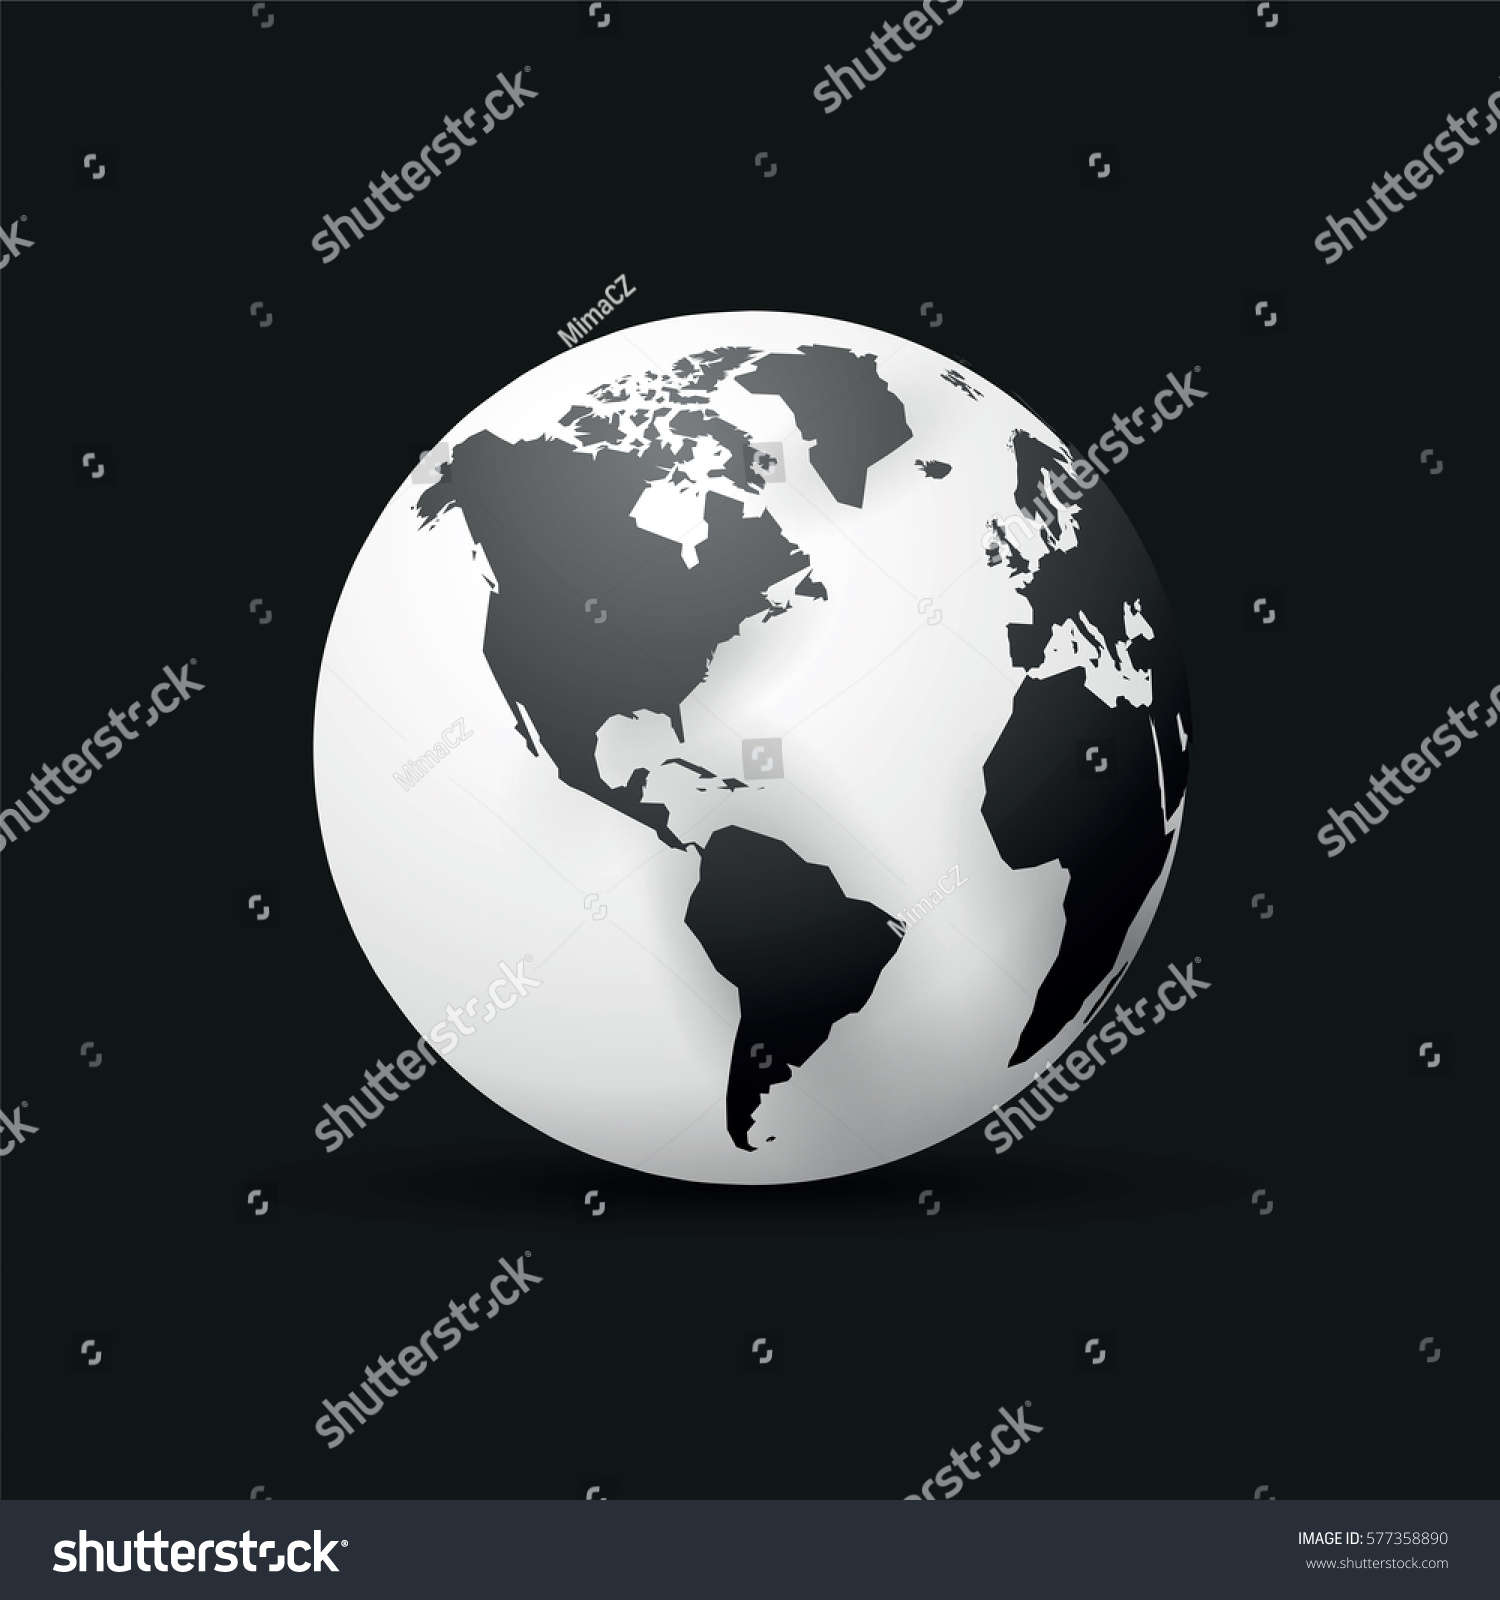 Black earth globe world map design stock vector 577358890 black earth globe world map design america gumiabroncs Image collections